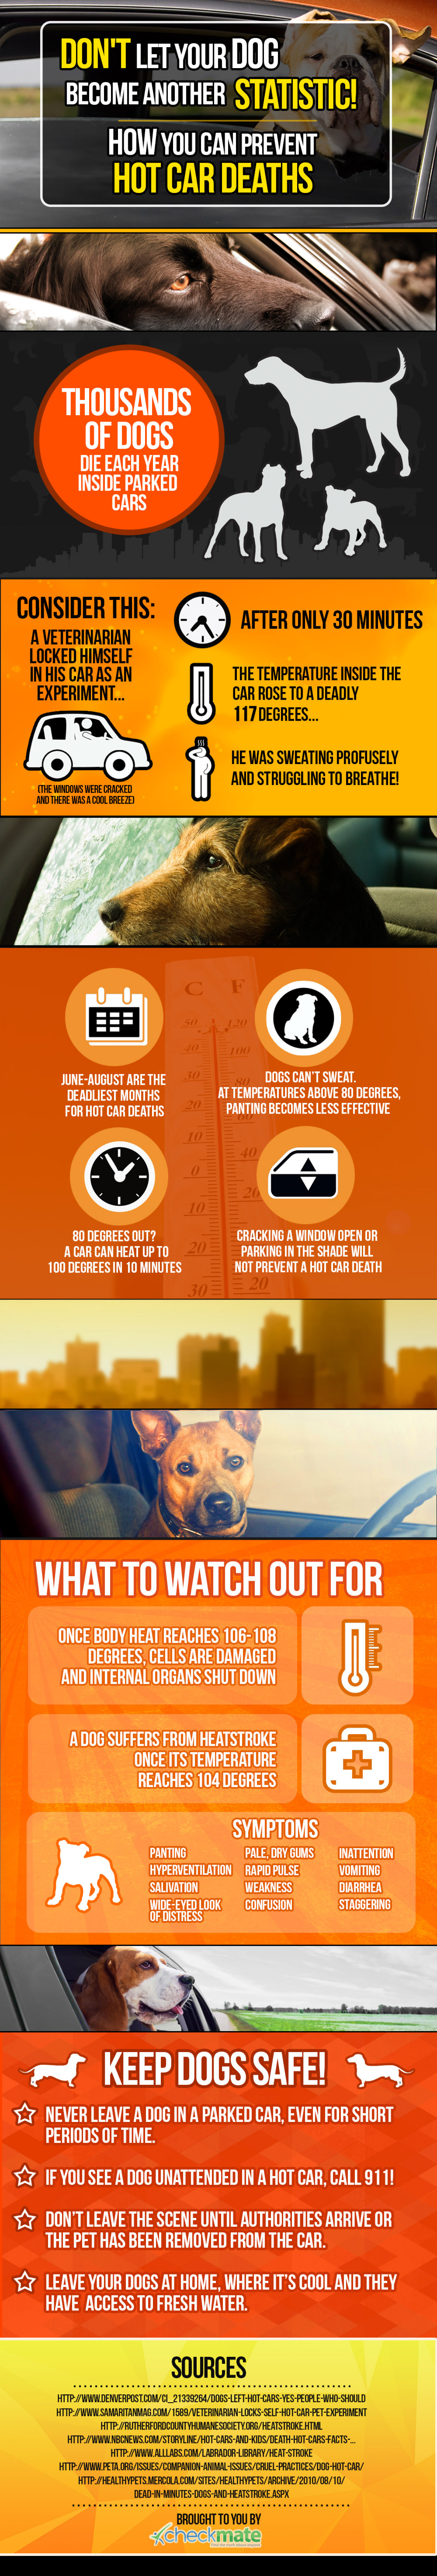 Dogs Are Dying In Hot Cars: Here's How You Can Help Save Them Infographic